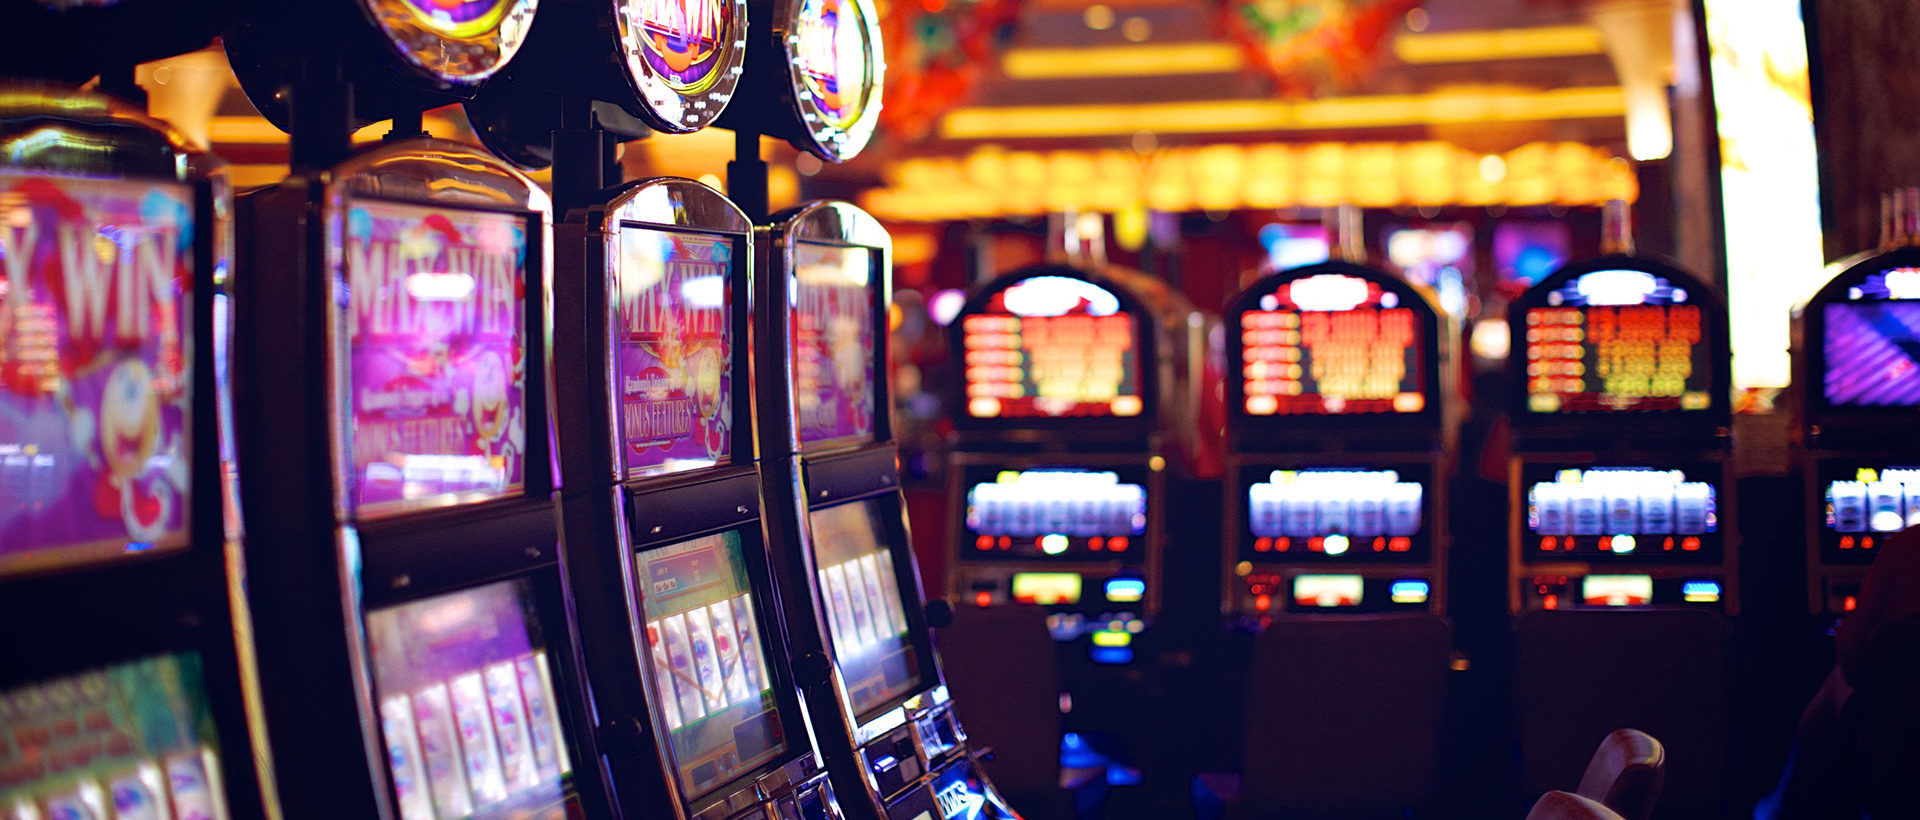 What You Should Check Before Playing A New Online Slot Small Screen